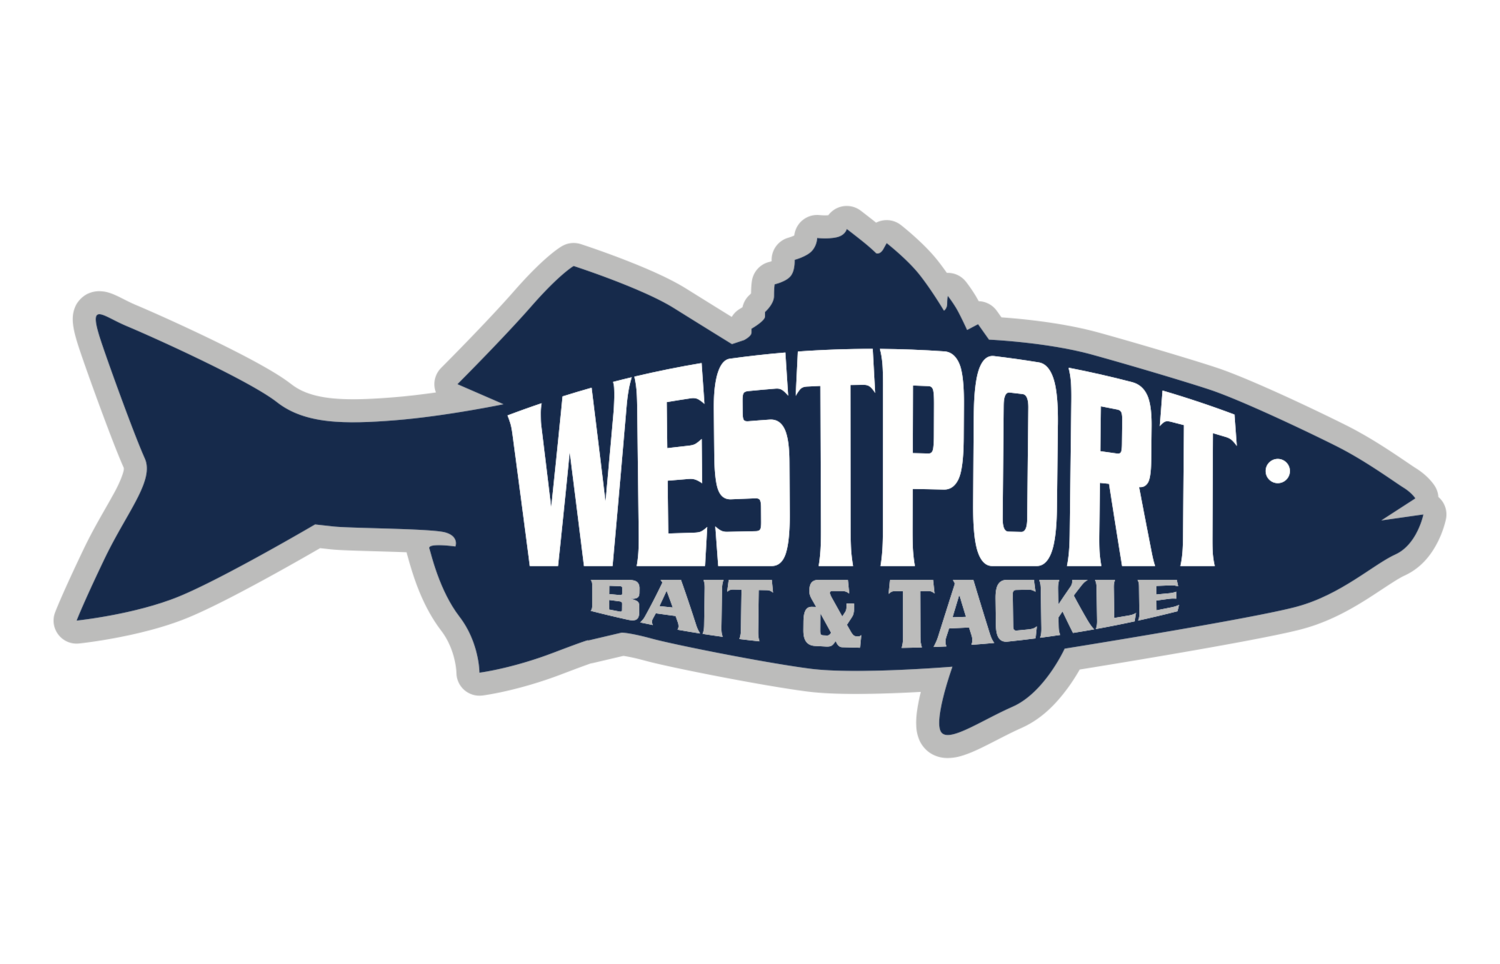 Westport Bait & Tackle